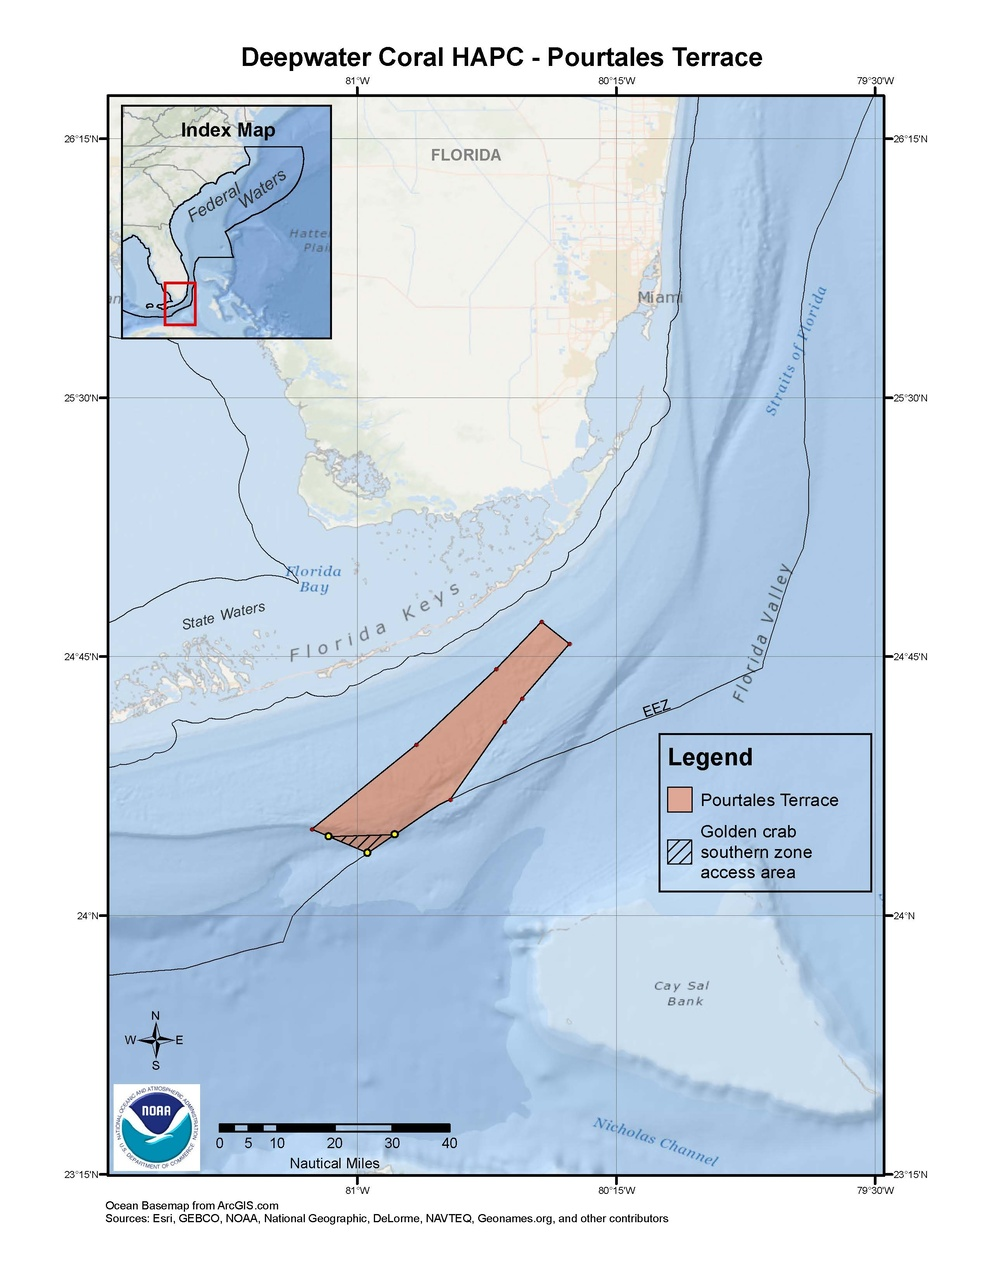 This is a map of Pourtales Terrace Deepwater Coral HAPC in the South Atlantic Region.